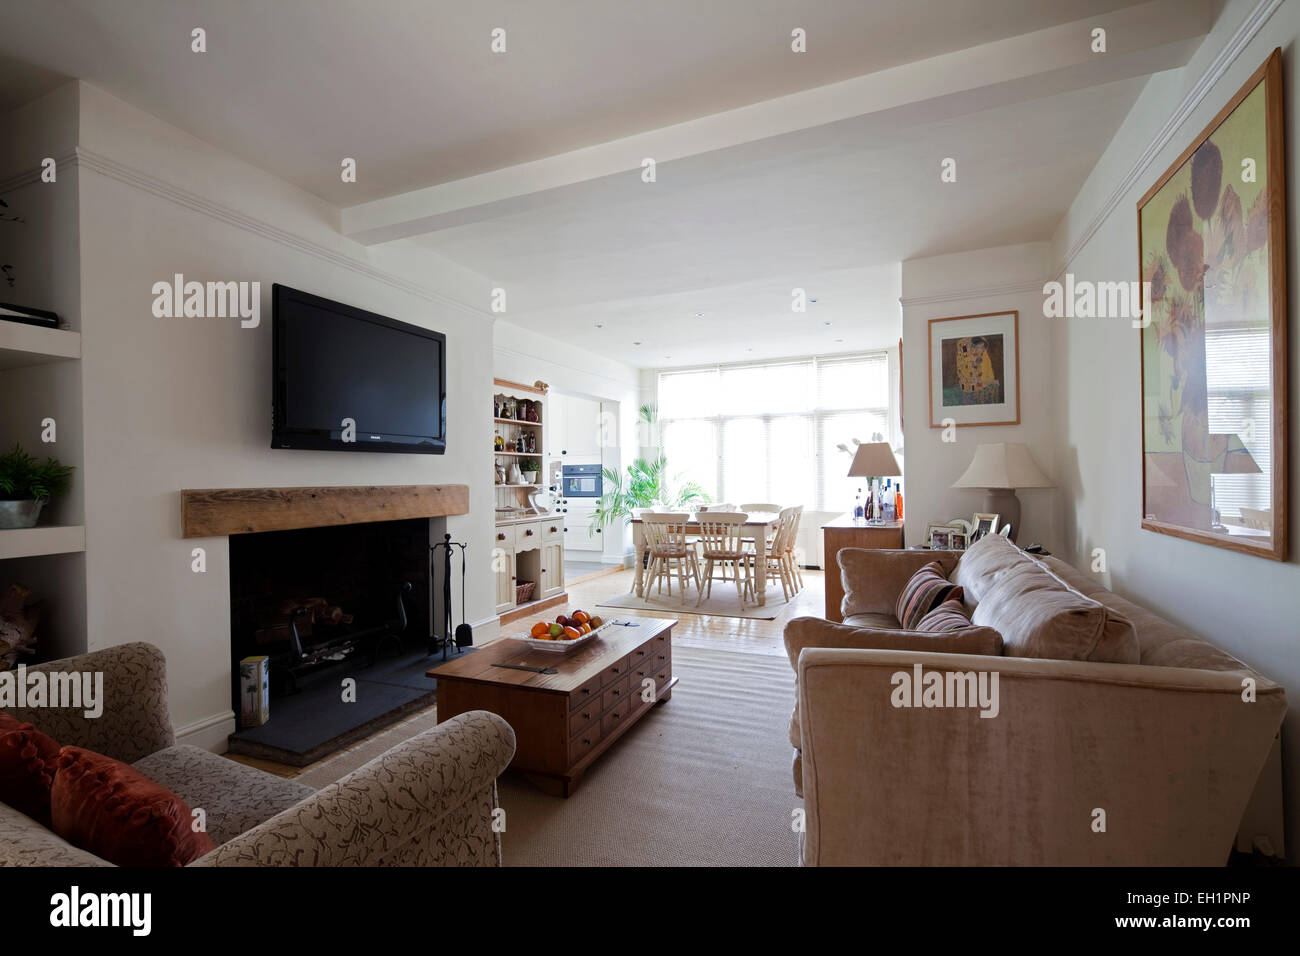 Open Plan Living Room With Plasma Screen Above Fireplace In Macclesfield Townhouse Cheshire England UK